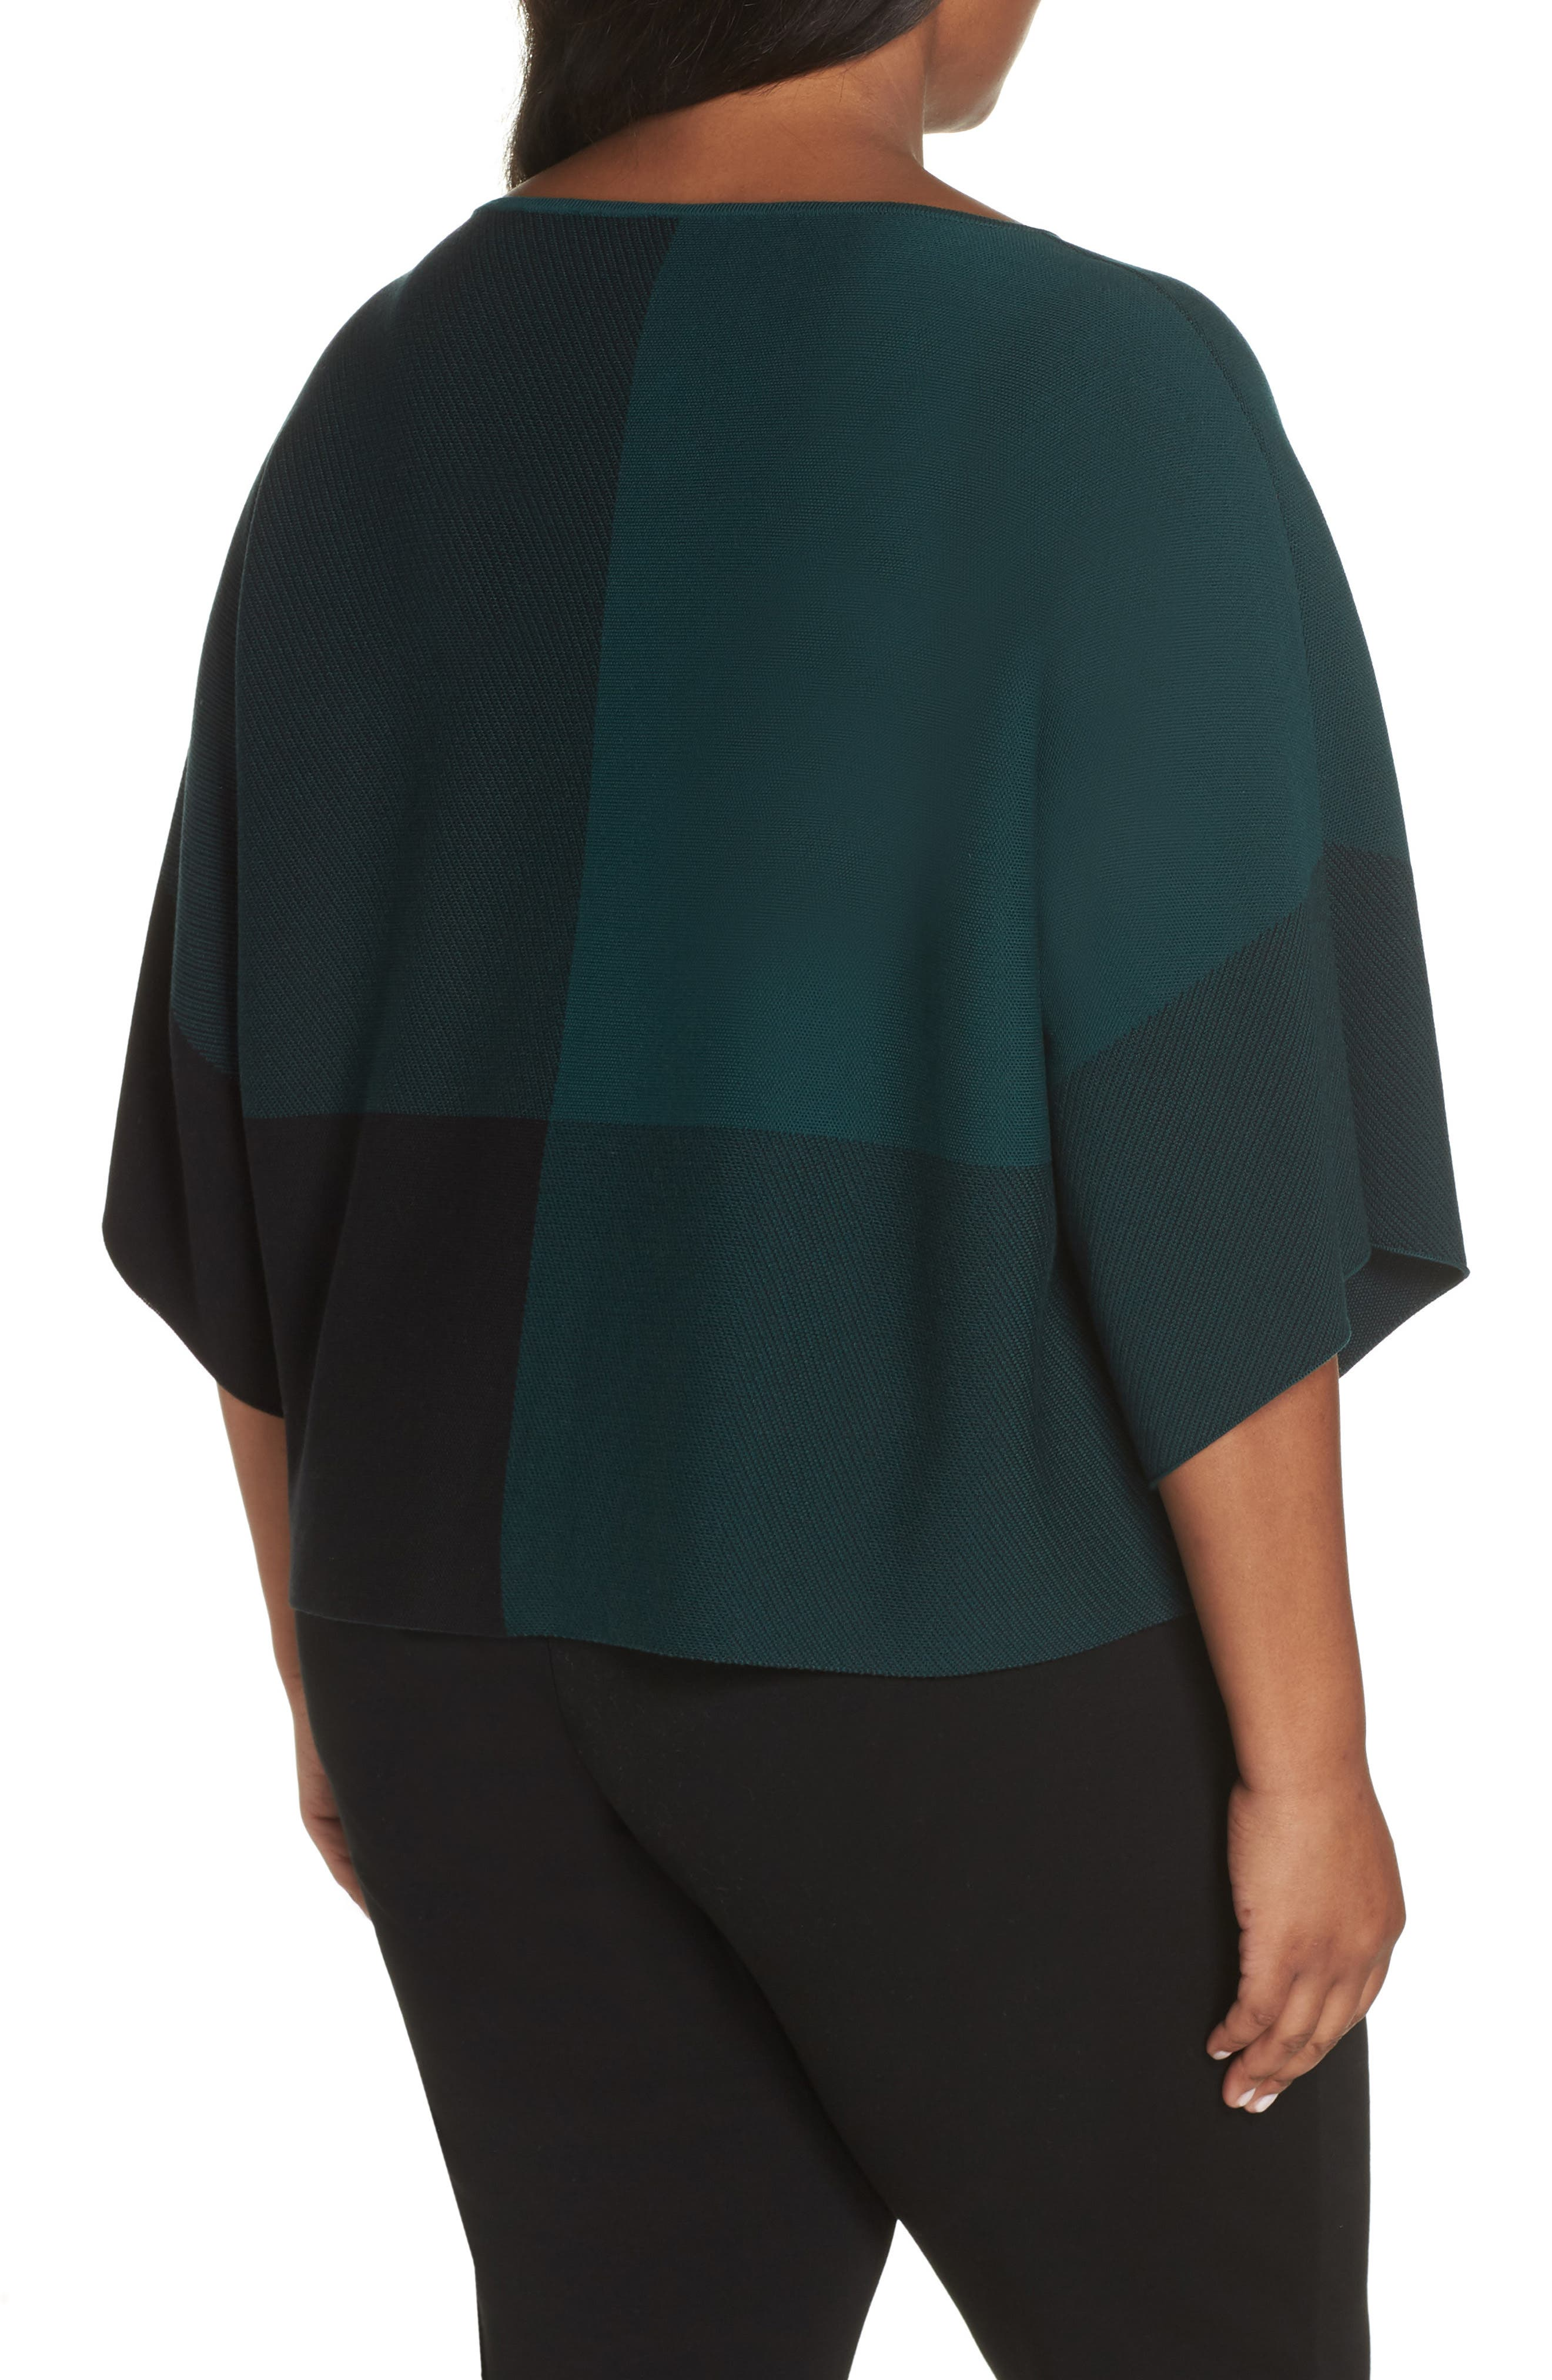 Colorblock Tencel<sup>®</sup> Lyocell Sweater,                             Alternate thumbnail 2, color,                             PINE